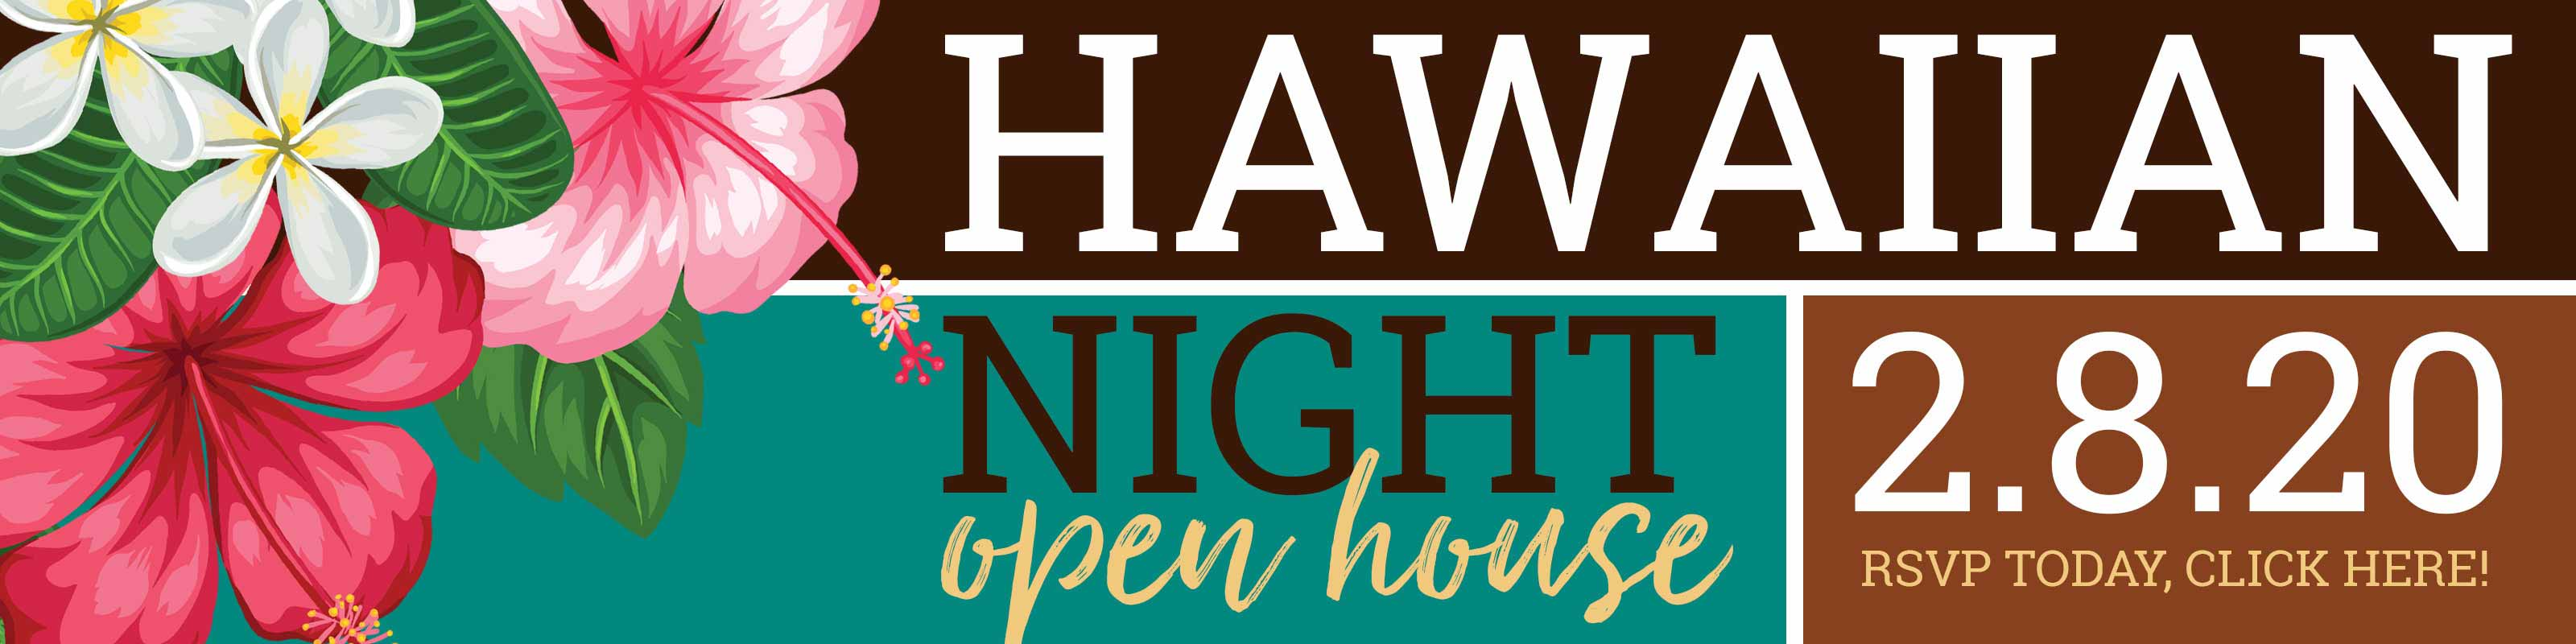 Hawaiian Night Open House - 2/8/2020 - RSVP Today - Click Here!